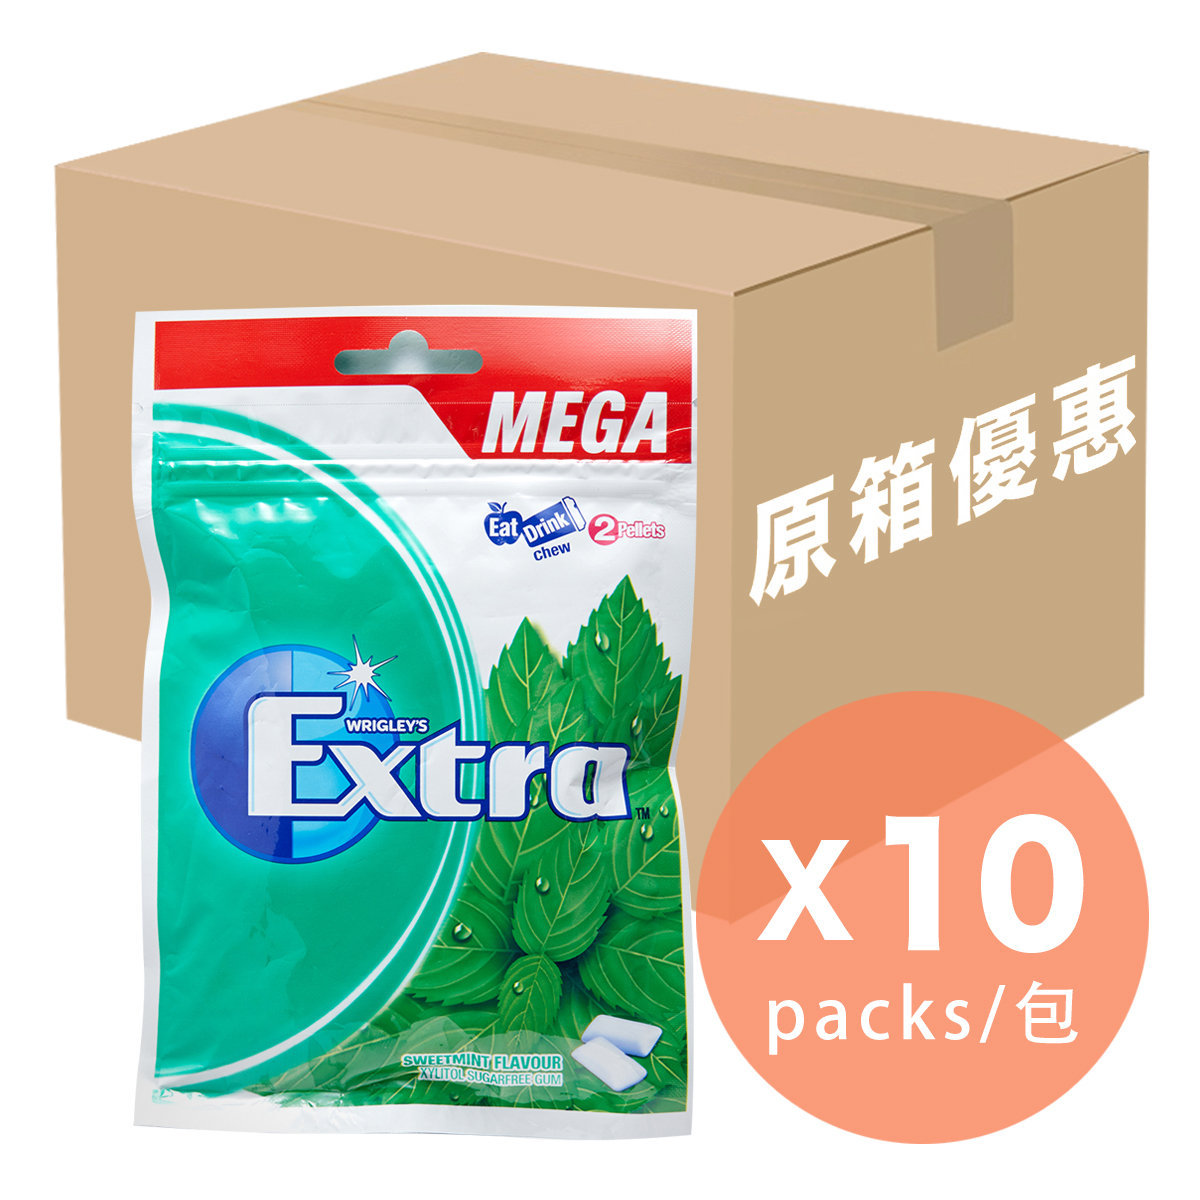 [Full Case] Xylitol Sugarfree Chewing Gum - Sweetmint Flavour (Refill)